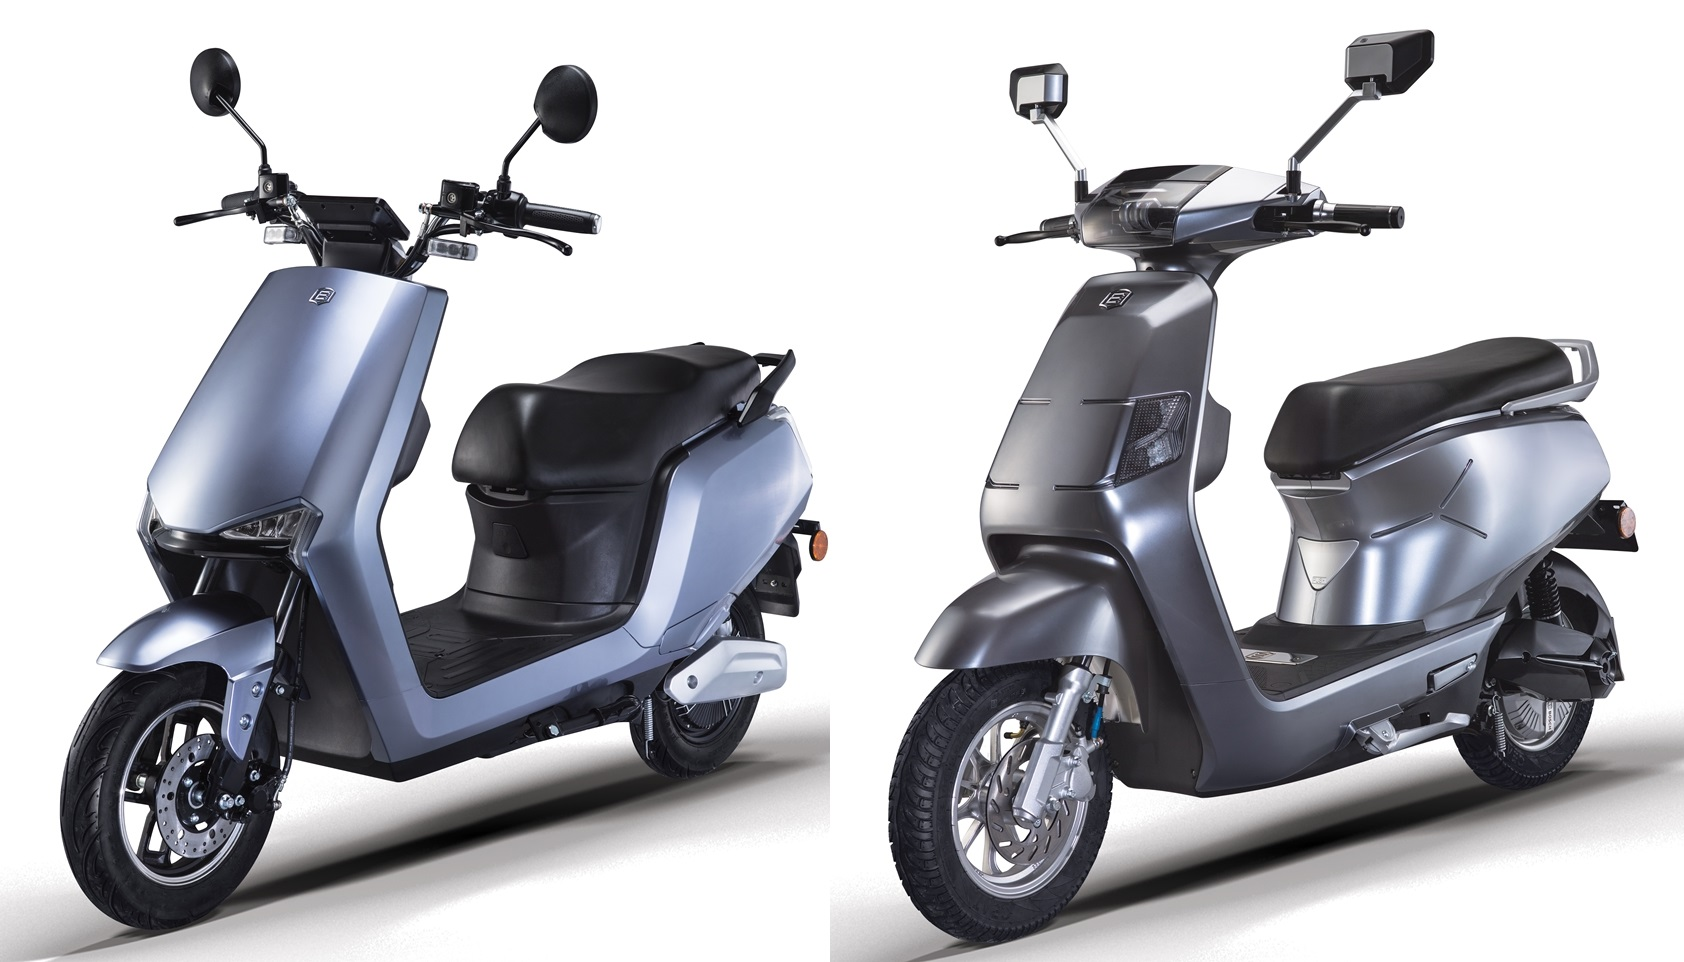 BGAUSS announces 2 electric scooter models for India